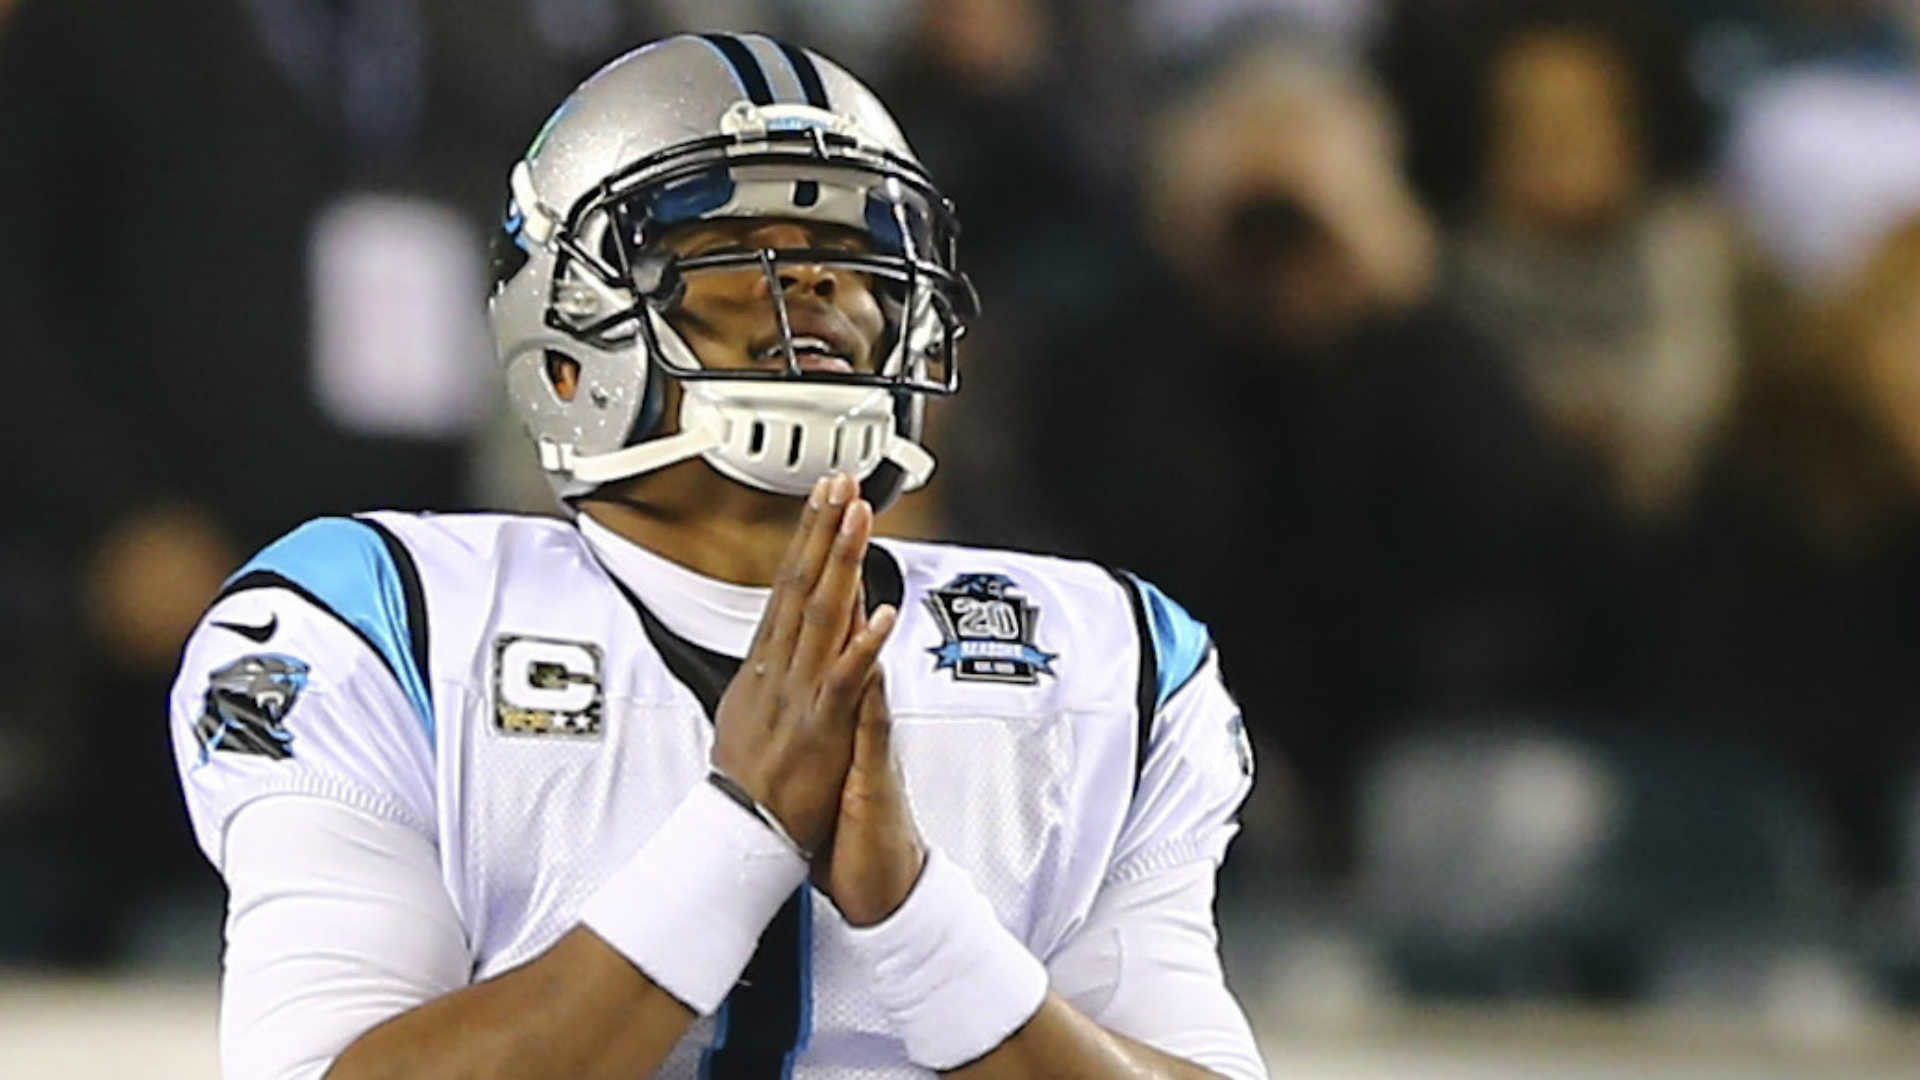 Panthers' Cam Newton needs help, health and headway   NFL   Sporting News